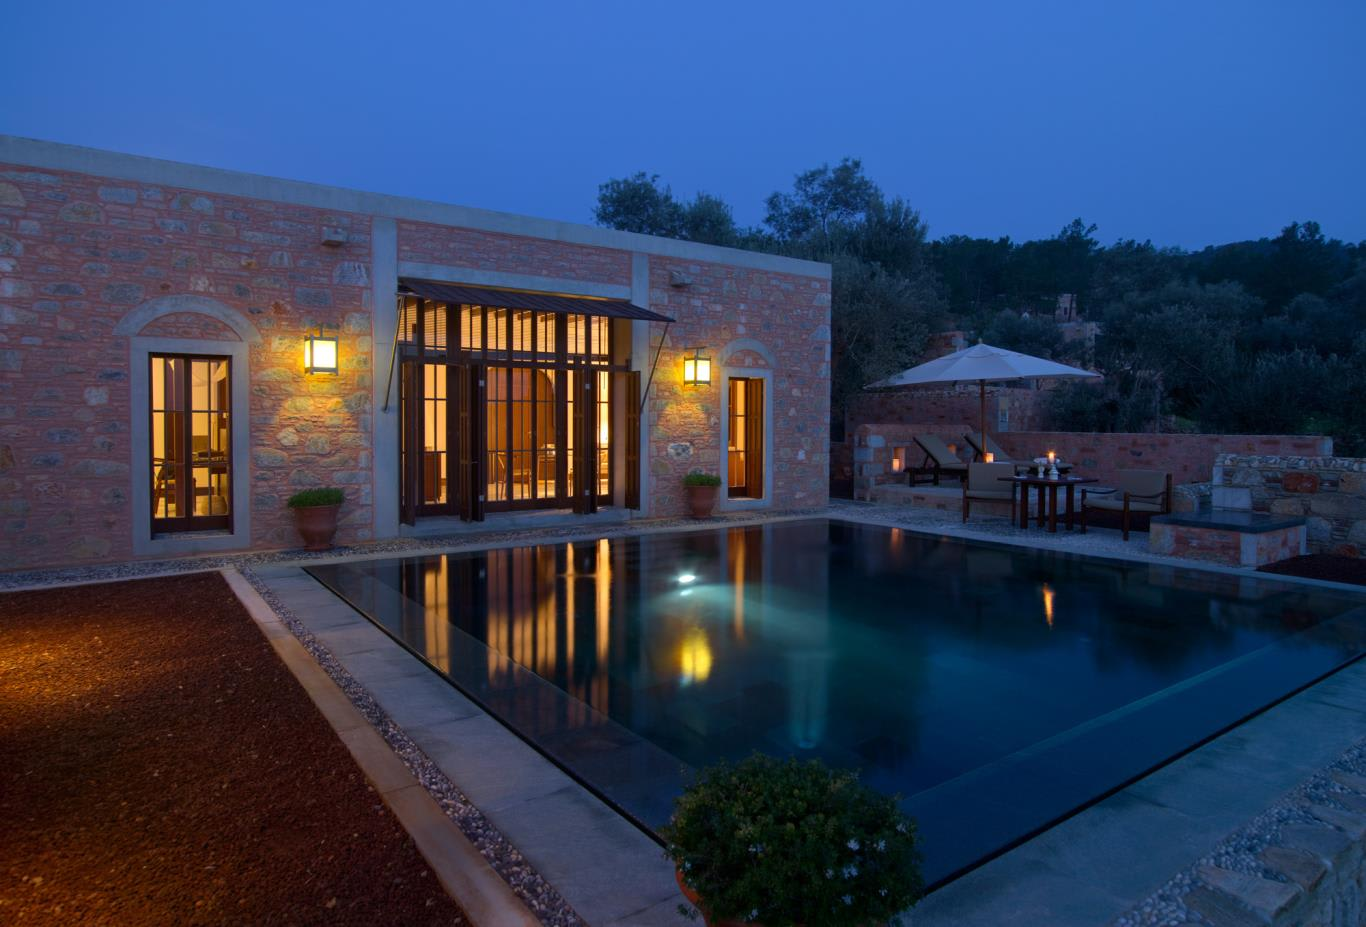 Pool-Terrace-Cottage-Exterior